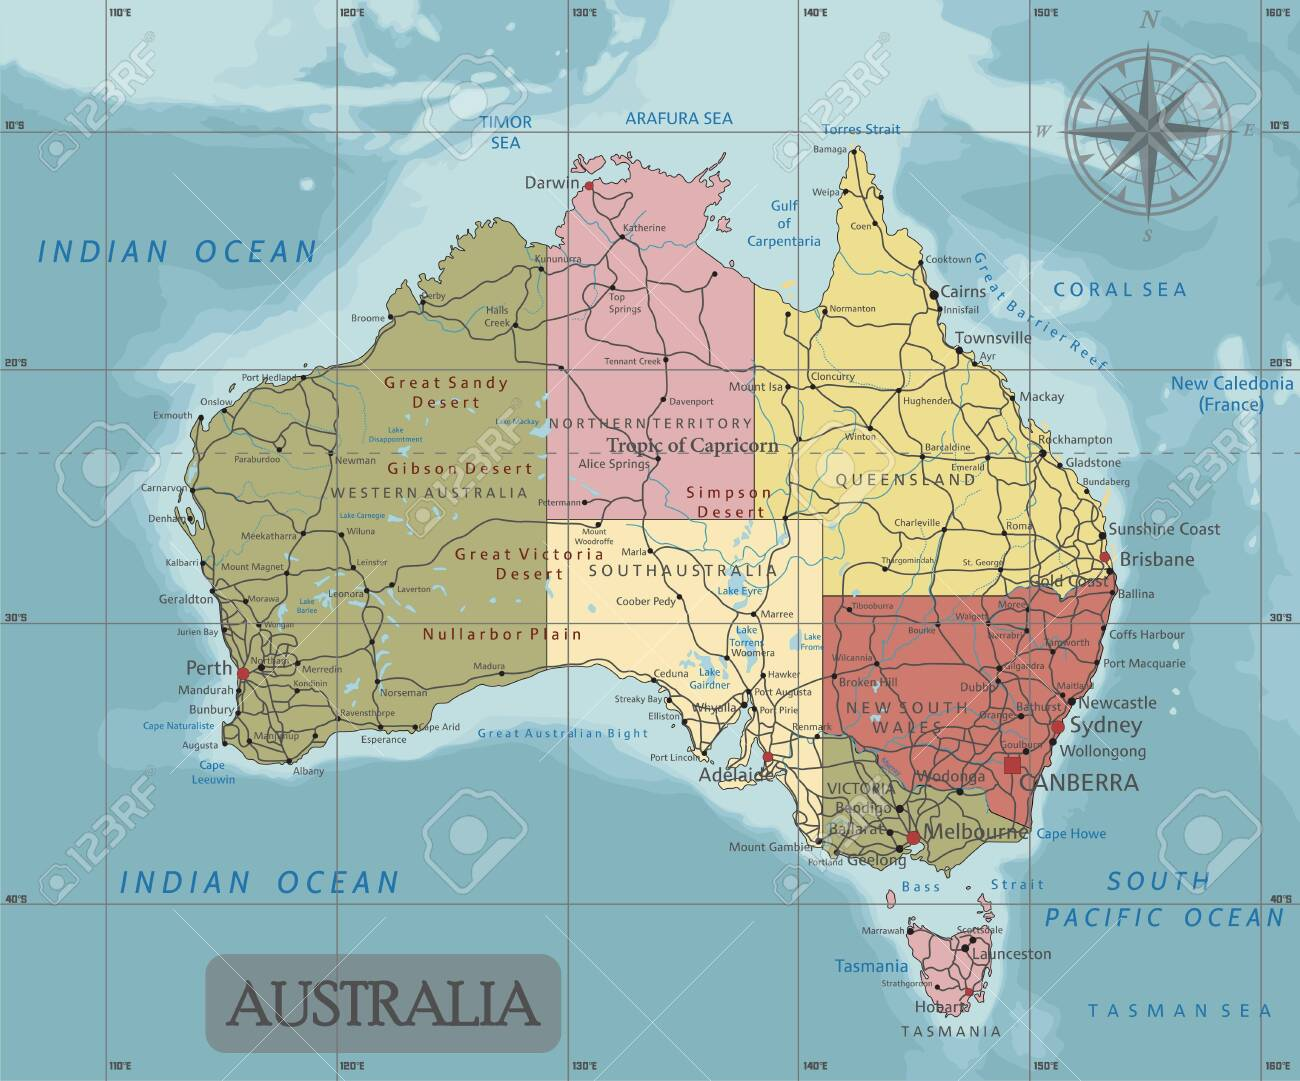 Australia Map Labeled.Detailed Australia Political Map In Mercator Projection Clearly